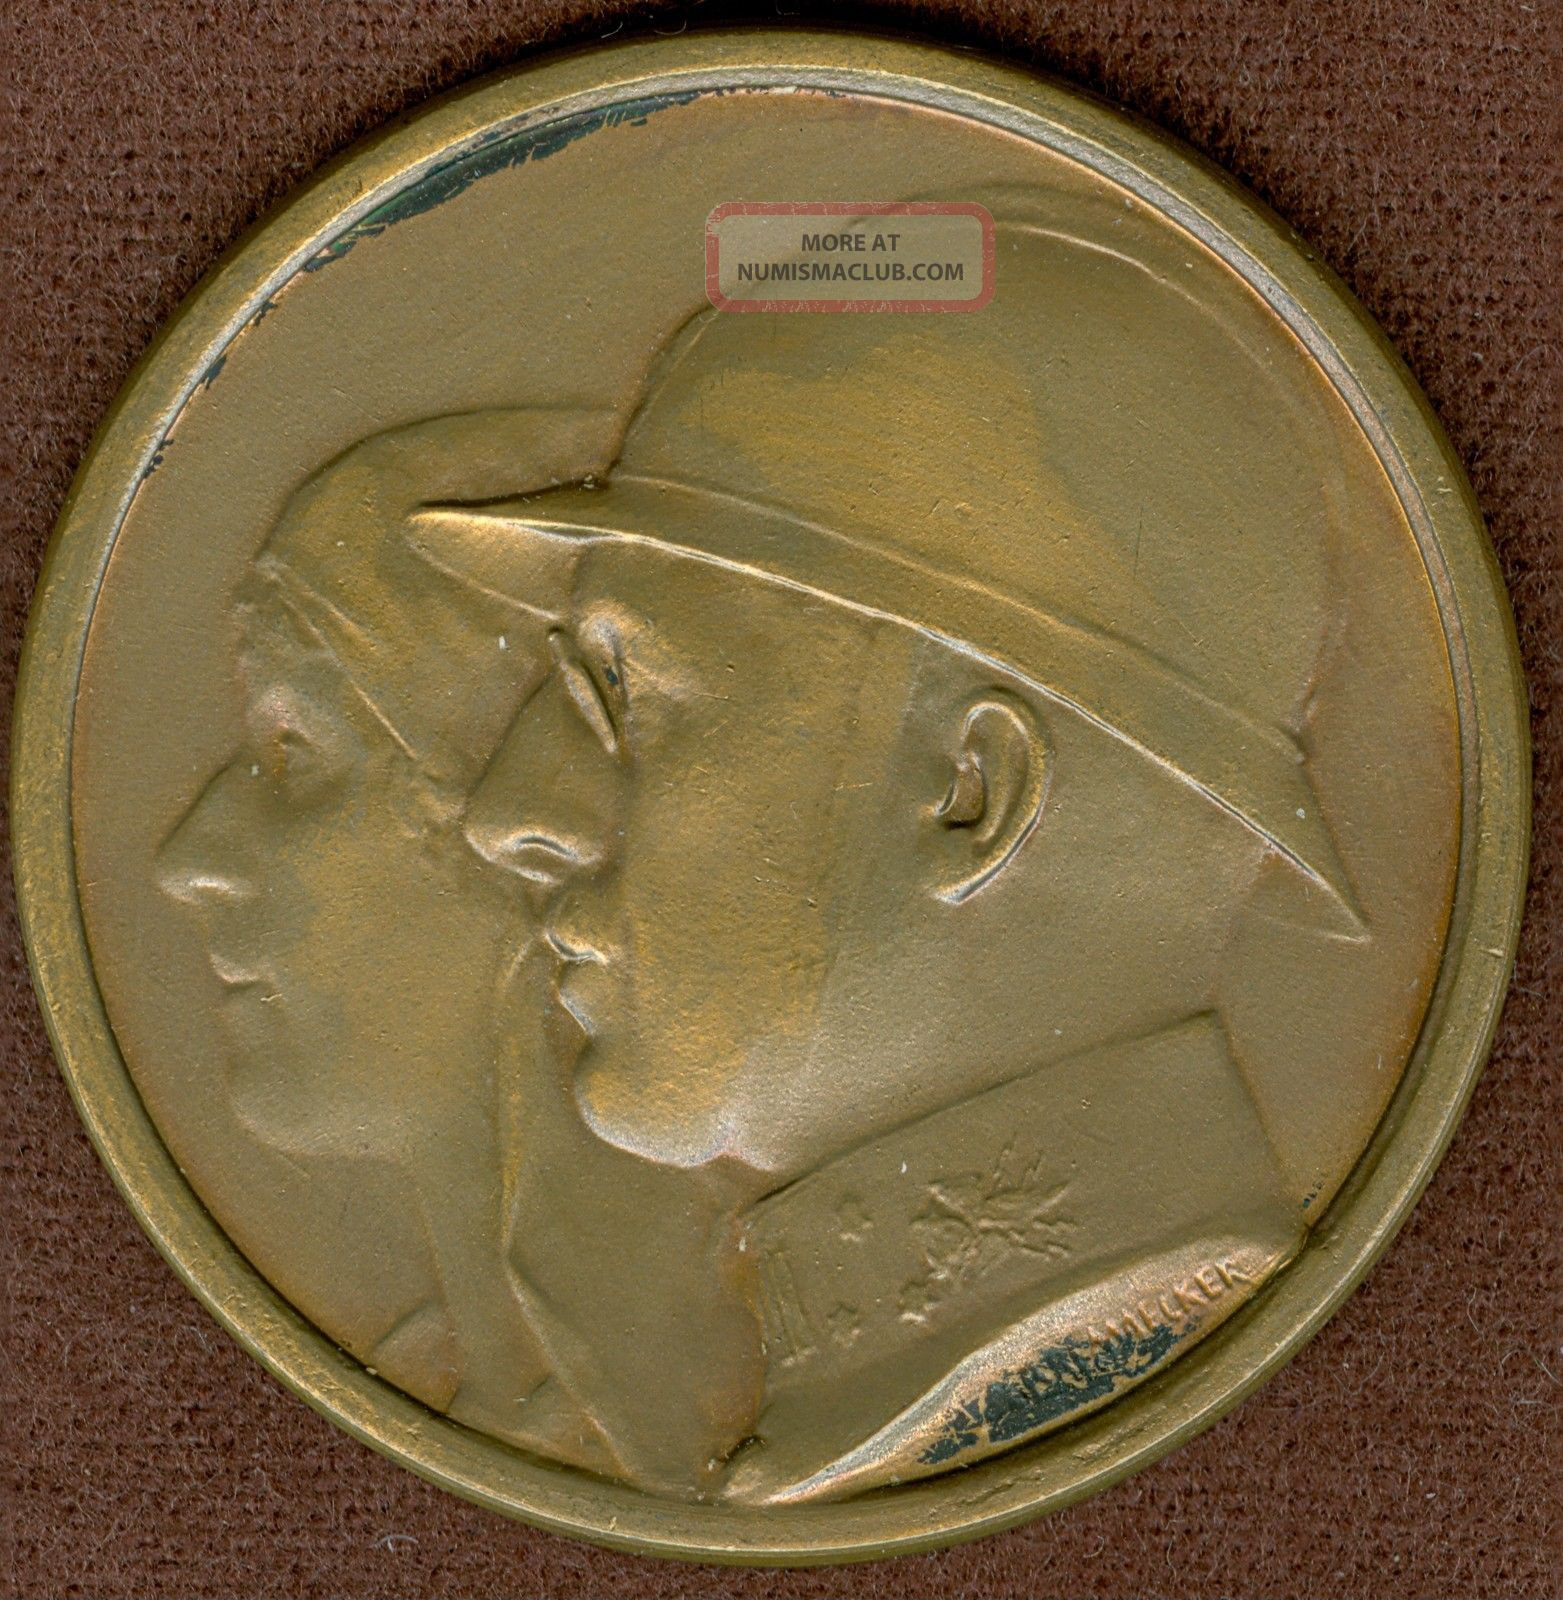 1949 Belgium Medal In Honor Of Ww1 Veteran Soldiers Society,  By E.  Bremaecker Exonumia photo